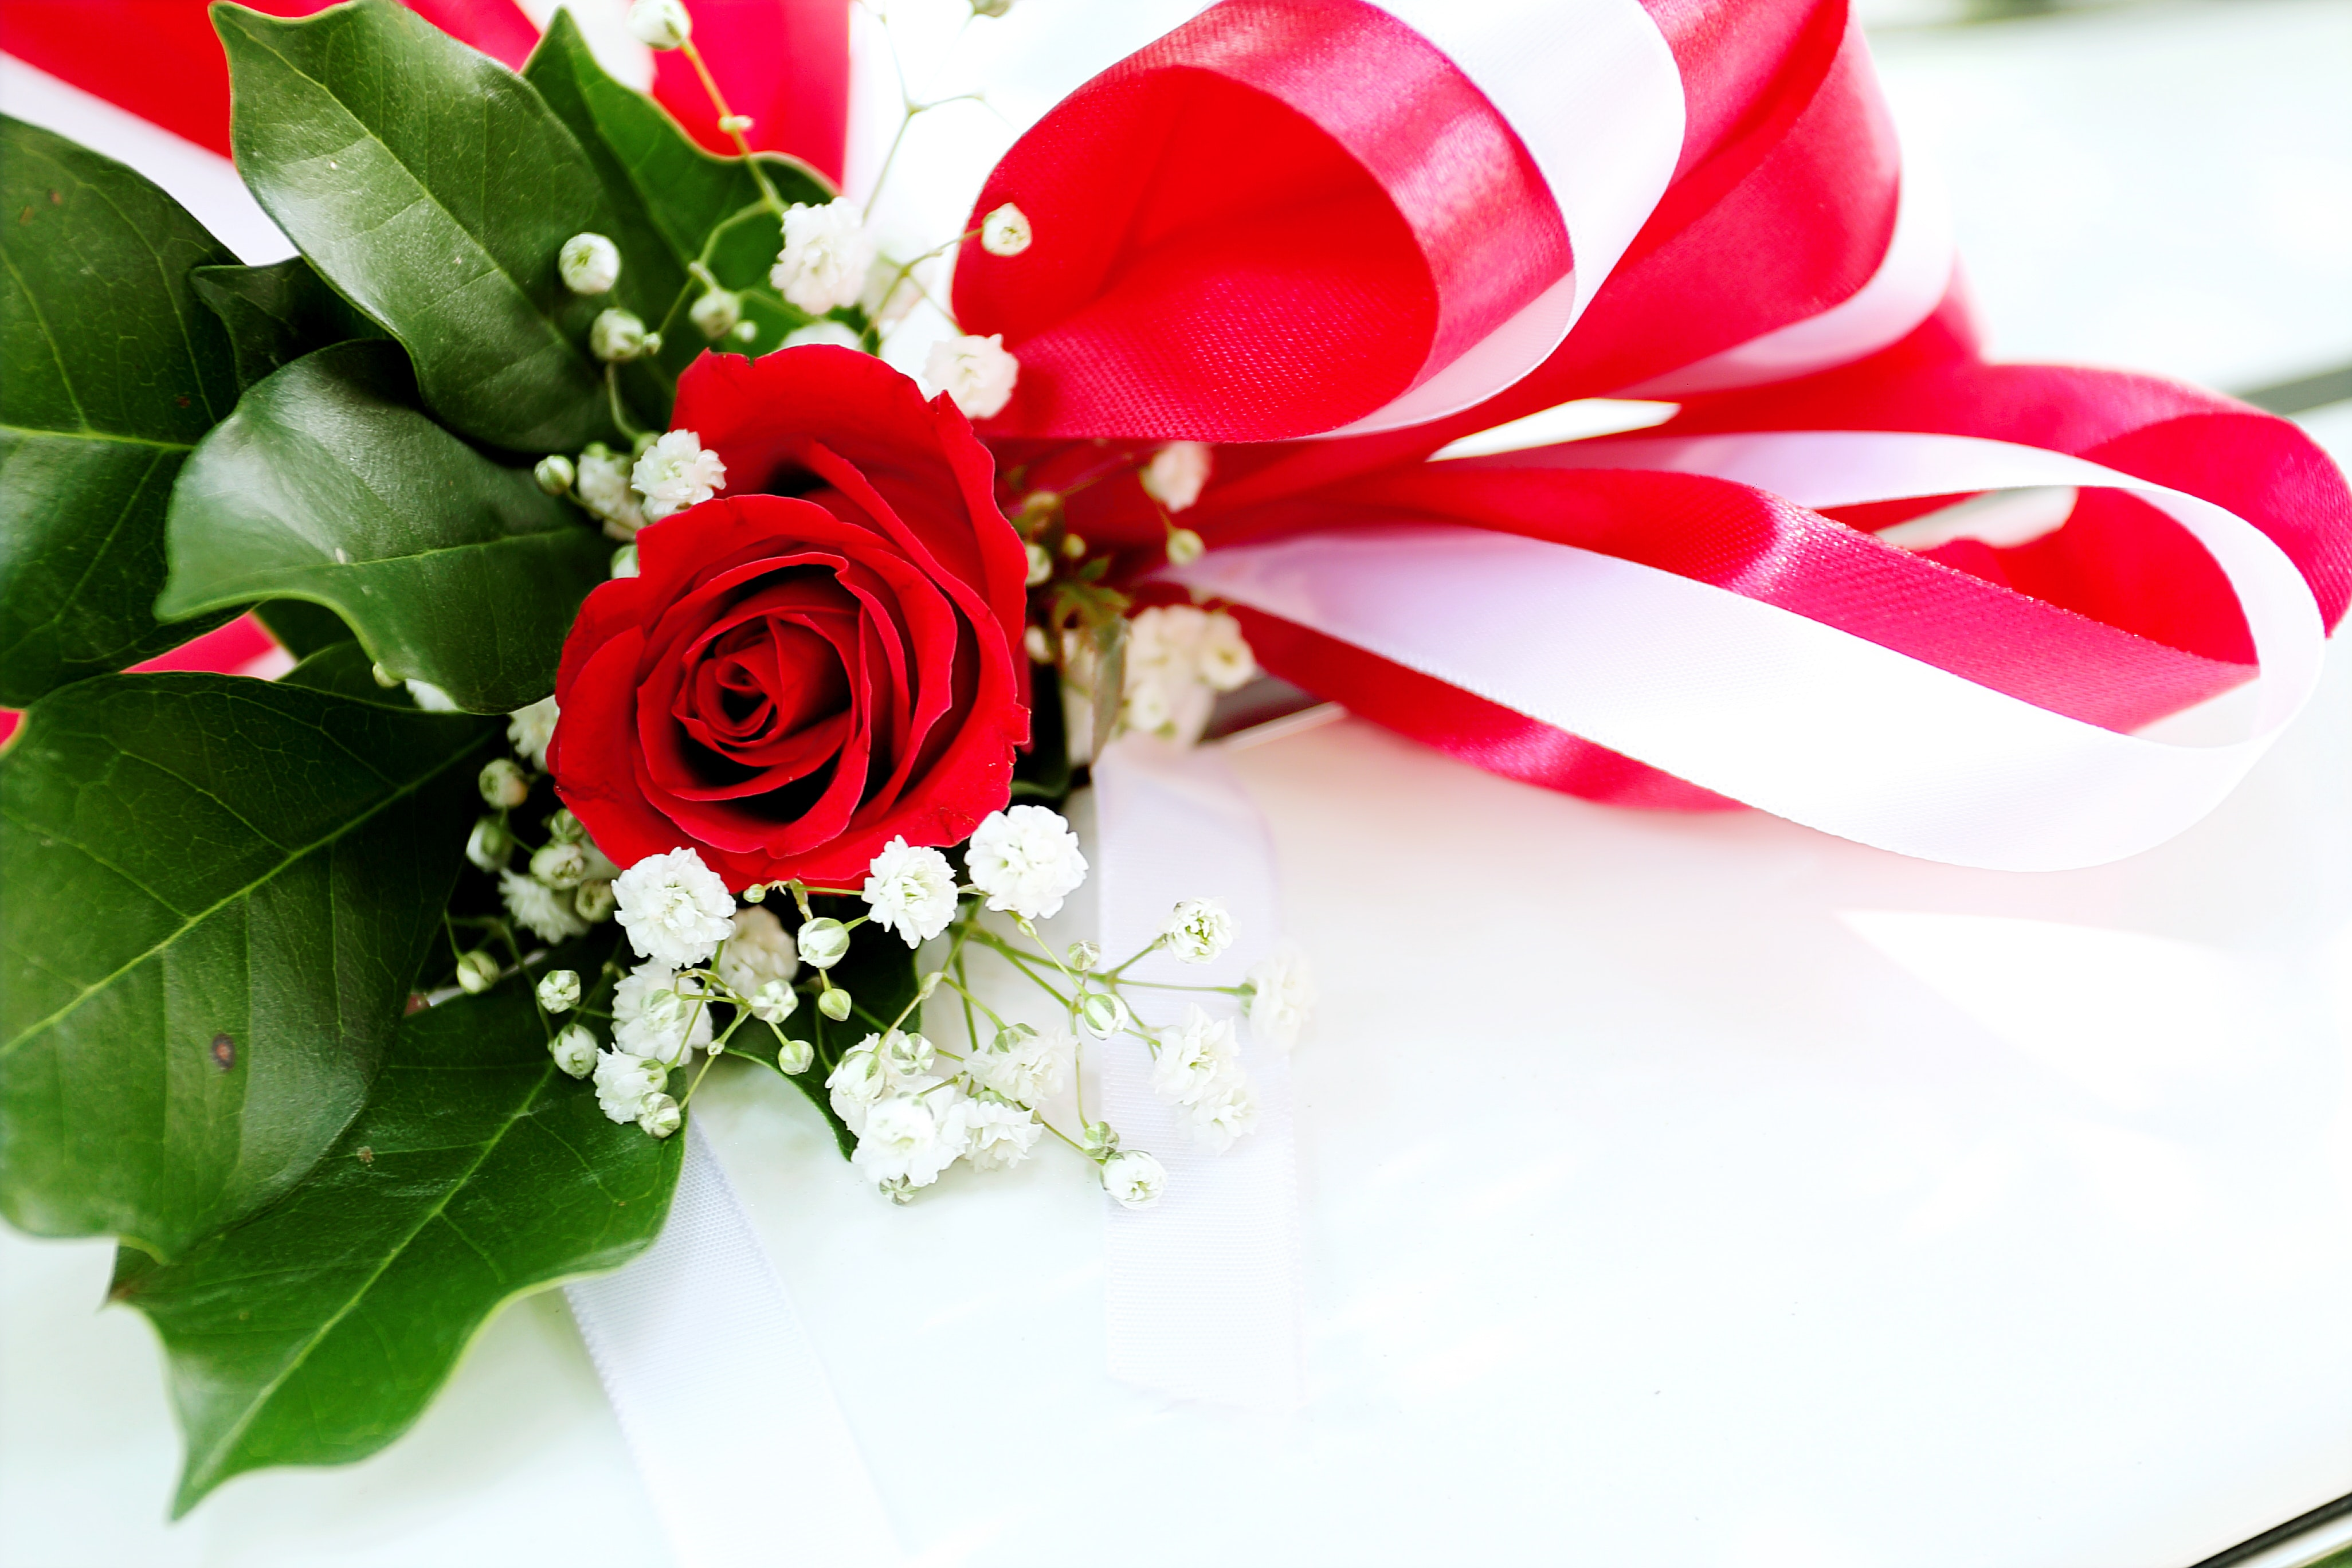 Free Photo Red Rose Flower On White Surface Petals Marriage